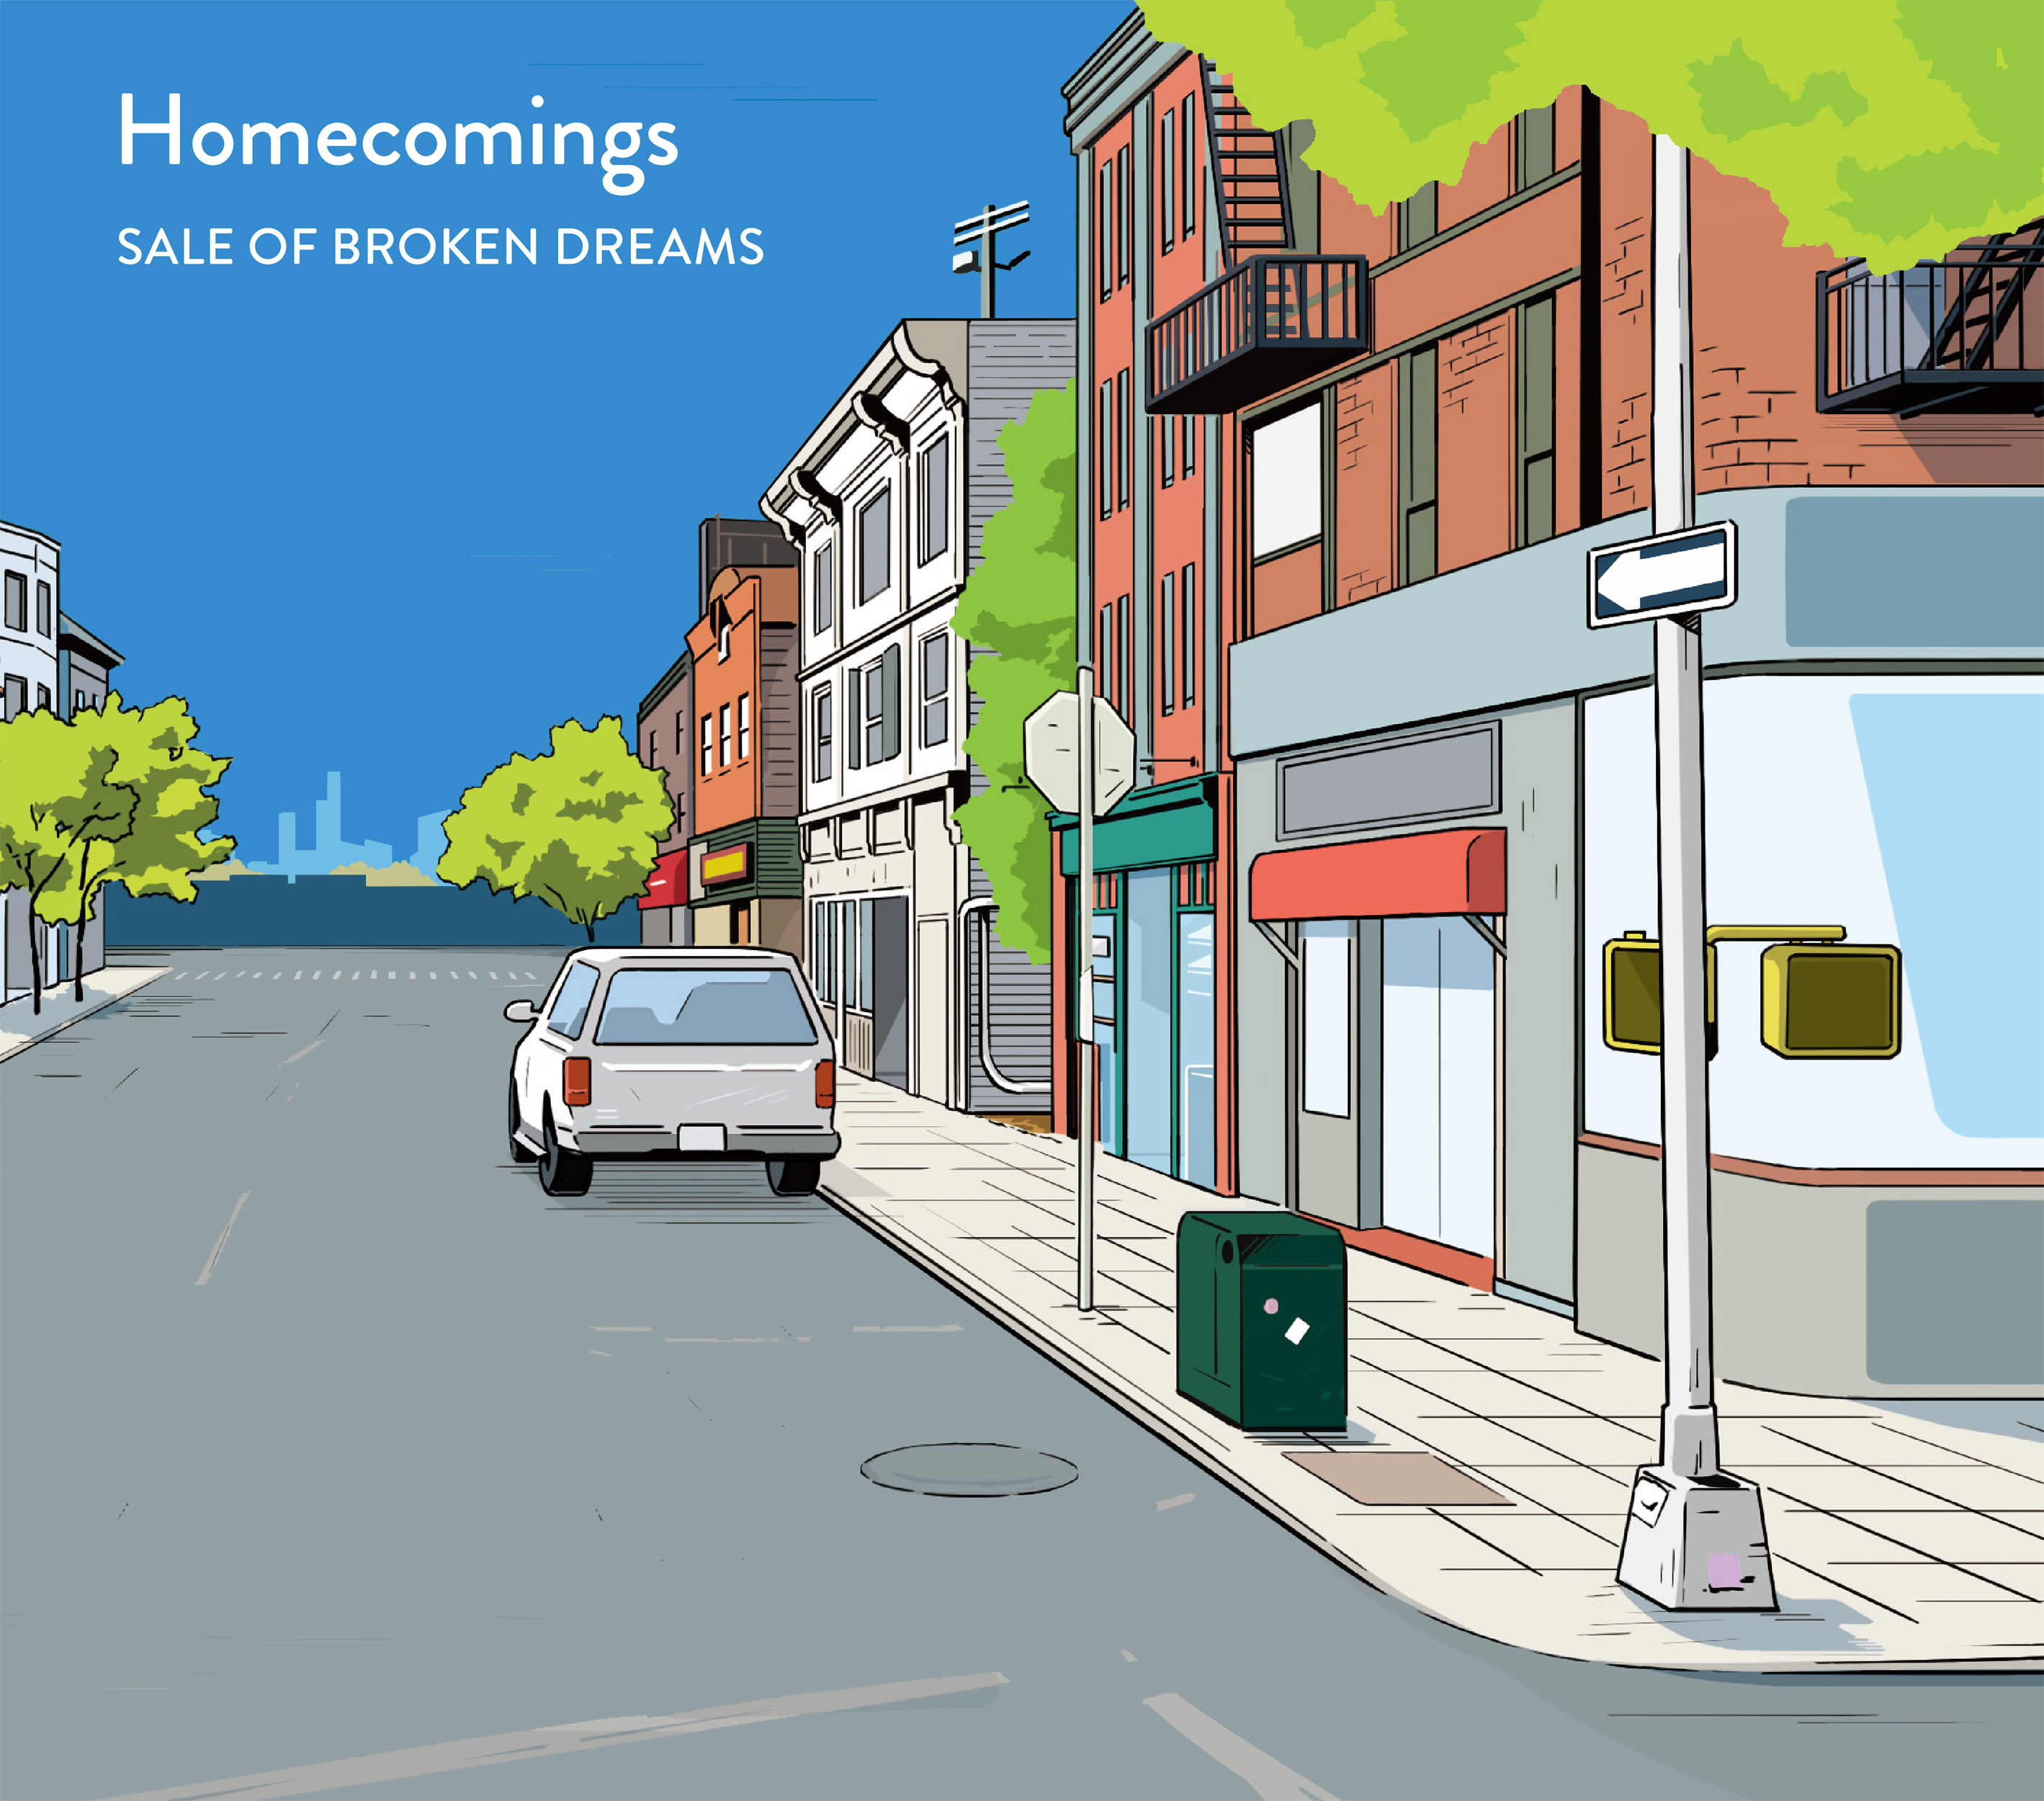 Homecomings / SALE OF BROKEN DREAMS